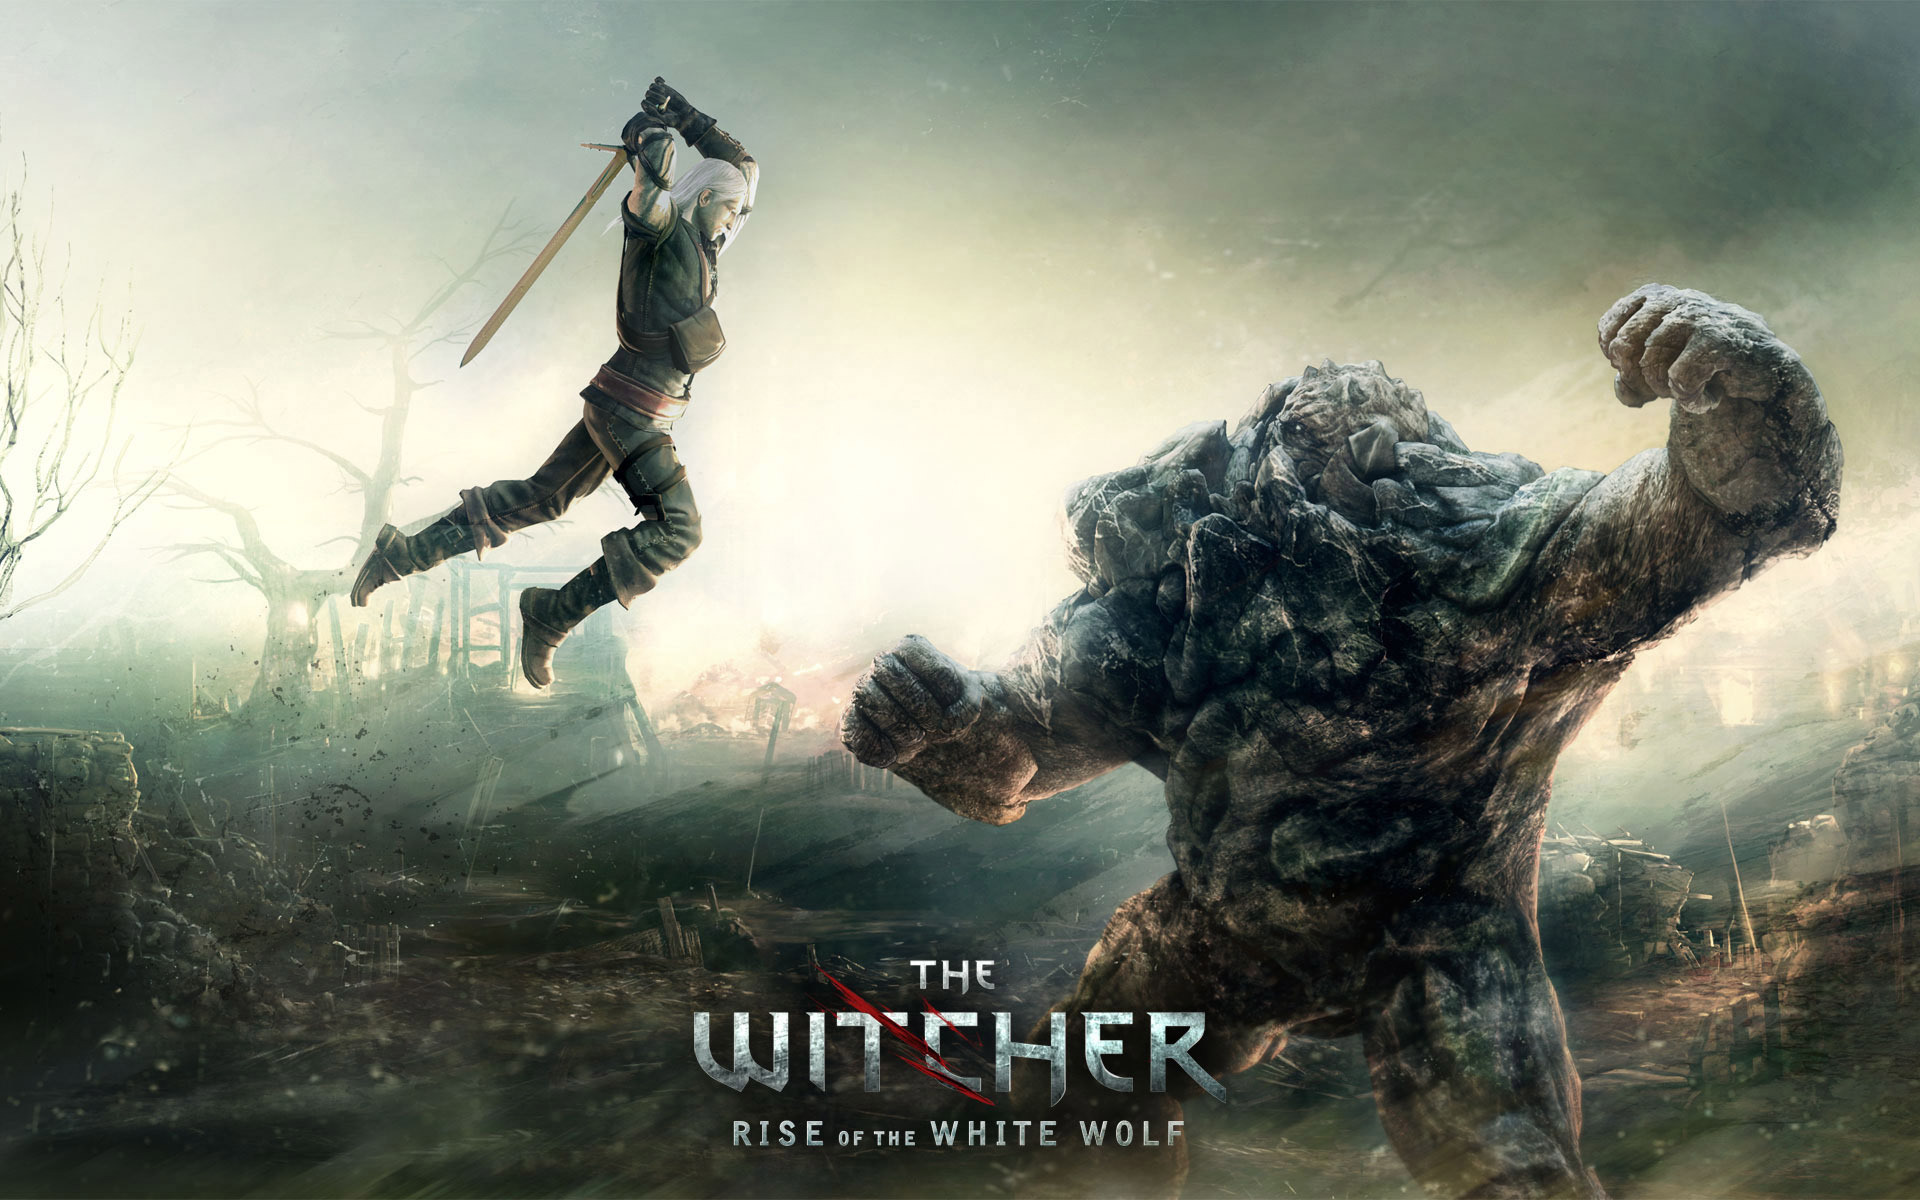 The Witcher   Rise of the White Wolf Wallpaper 6799 1920x1200